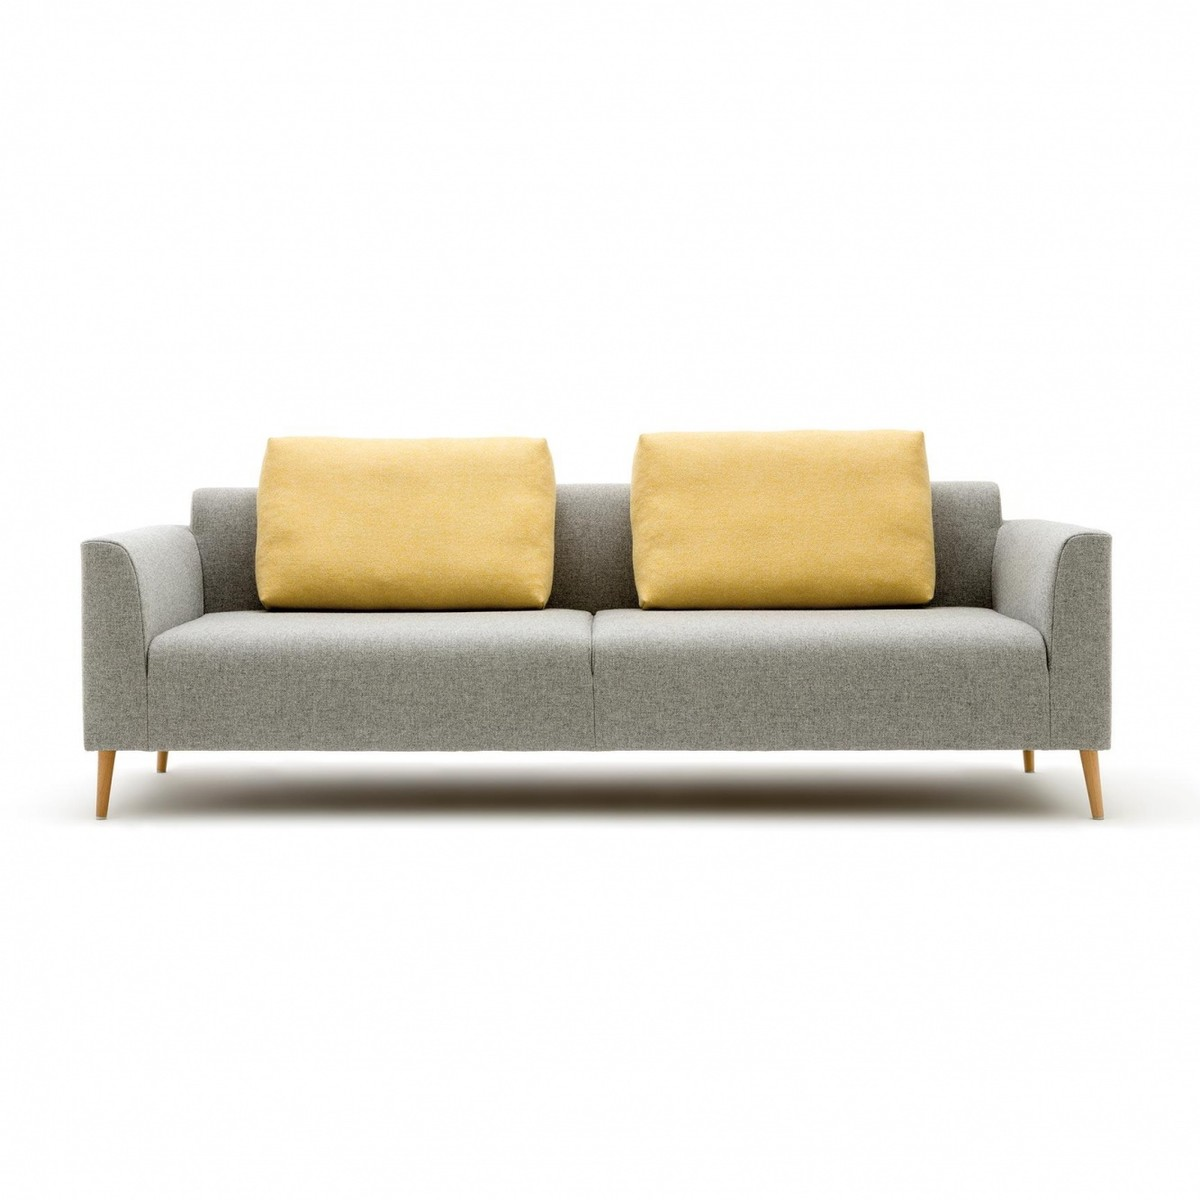 Freistil 162 3 sitzer sofa freistil rolf benz for Sofa benz rolf